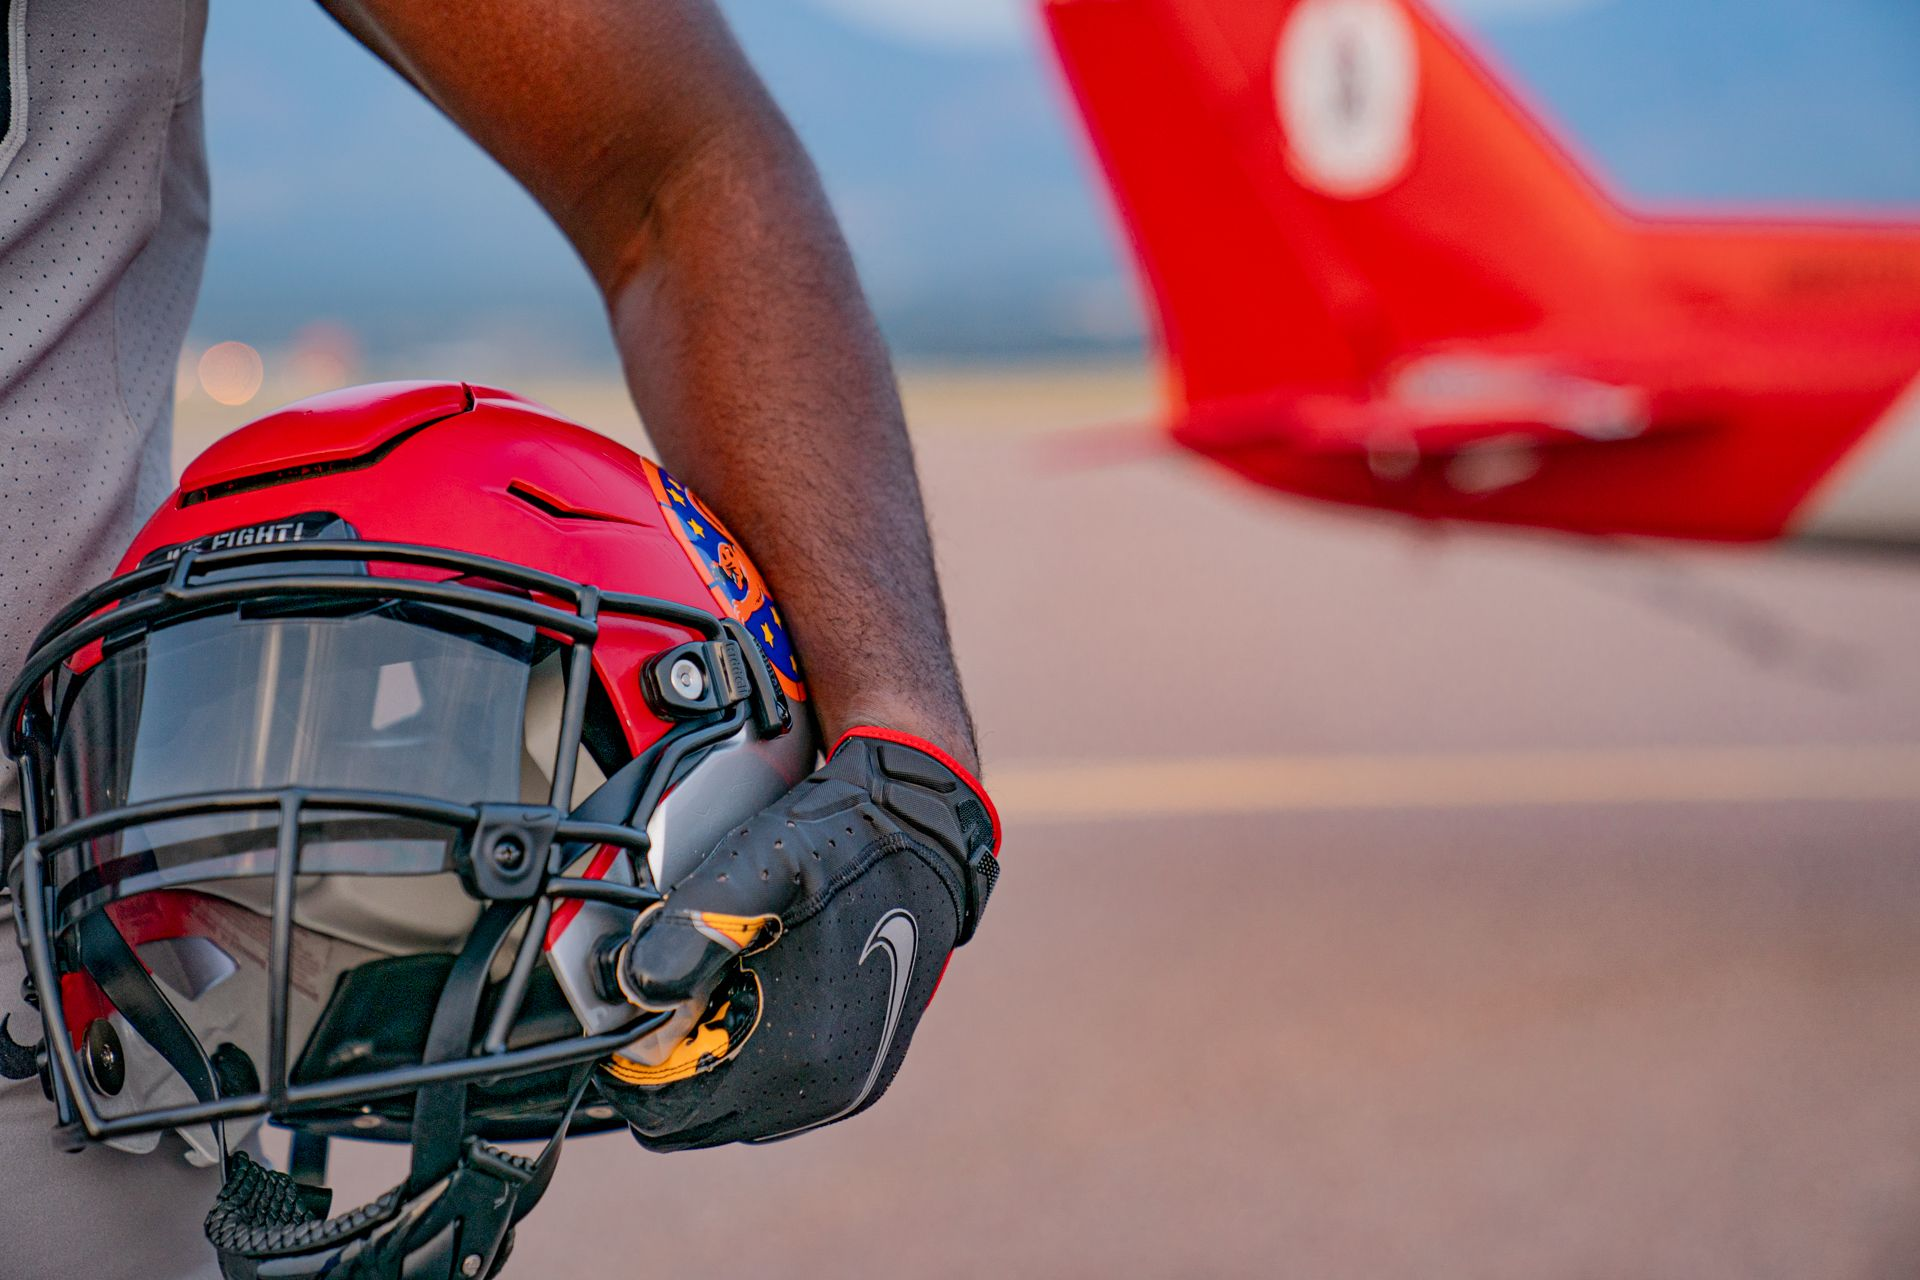 Air Force To Honor Tuskegee Airmen With 2020 Air Power Legacy Series Uniform Air Force Academy Athletics In 2020 Tuskegee Airmen Tuskegee Air Force Academy